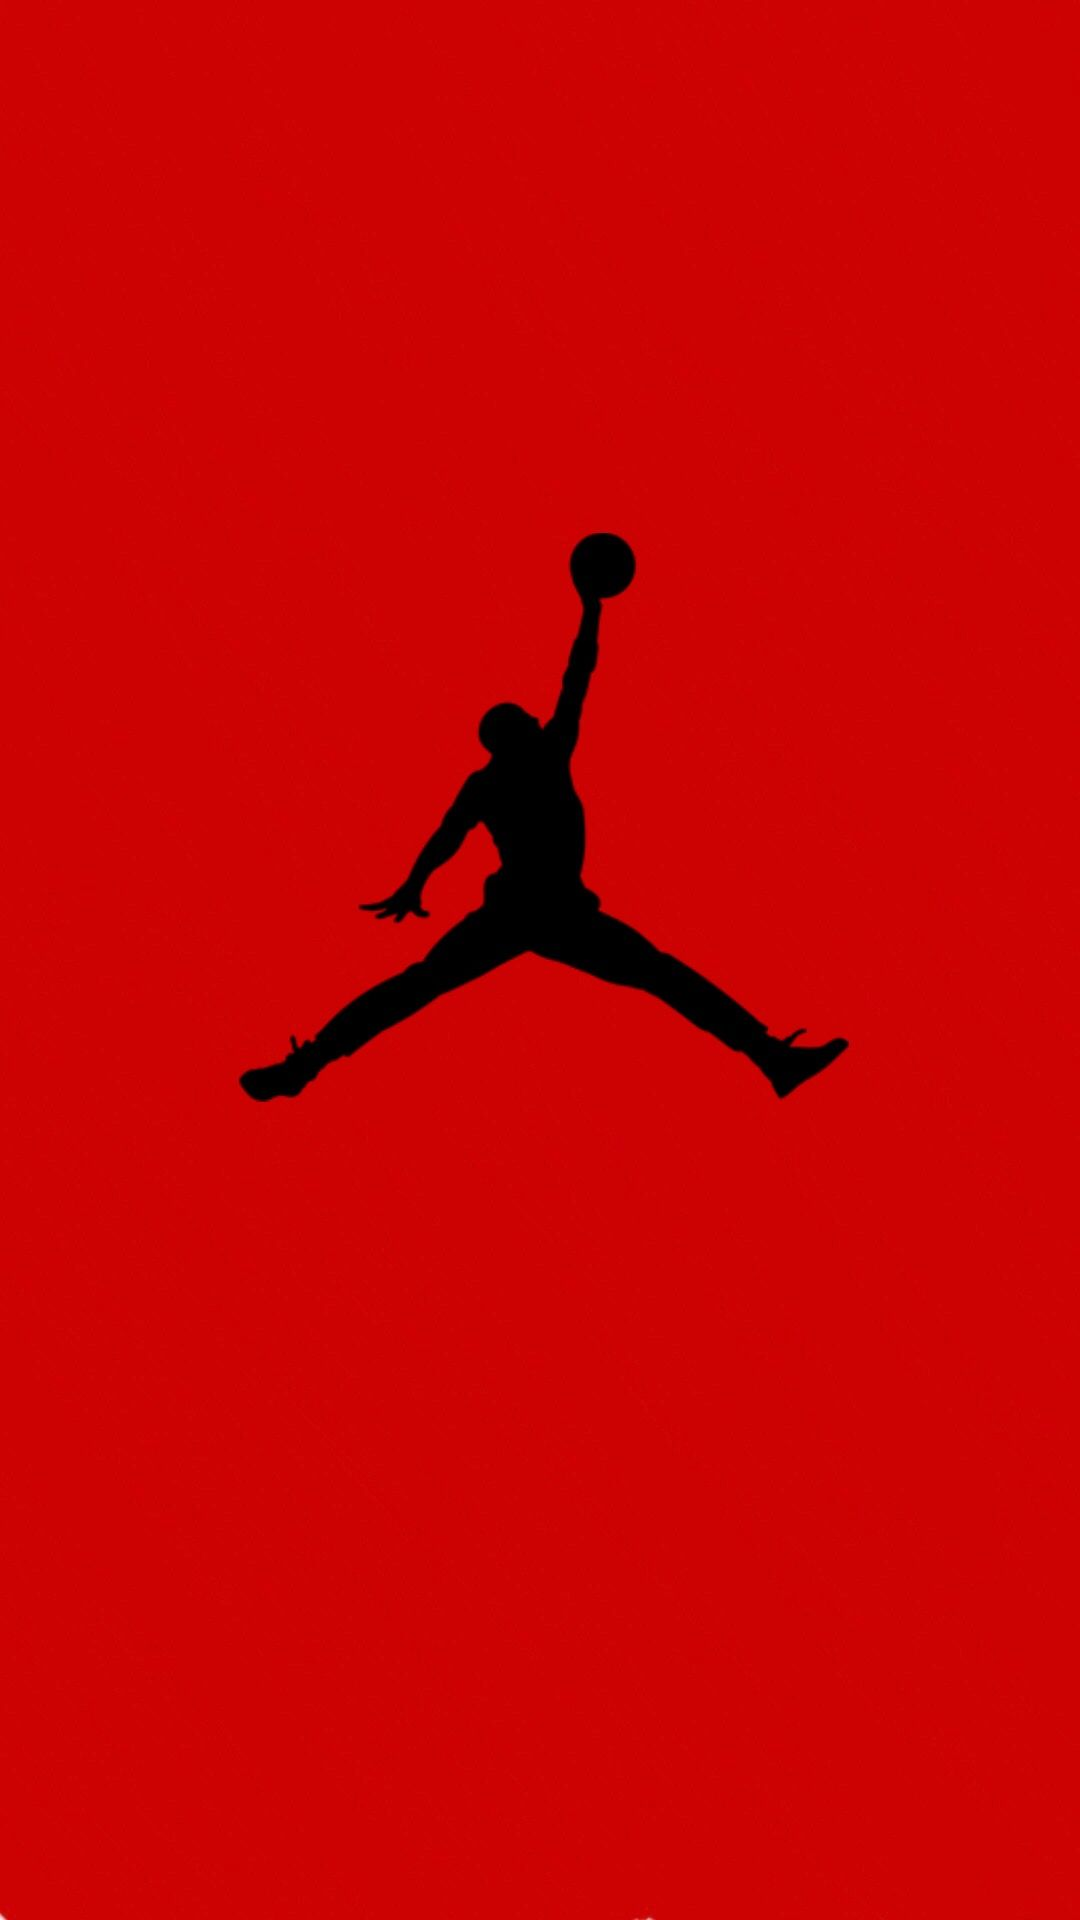 Air Jordan Logo Iphone Background Backgrounds For Iphone In 2019